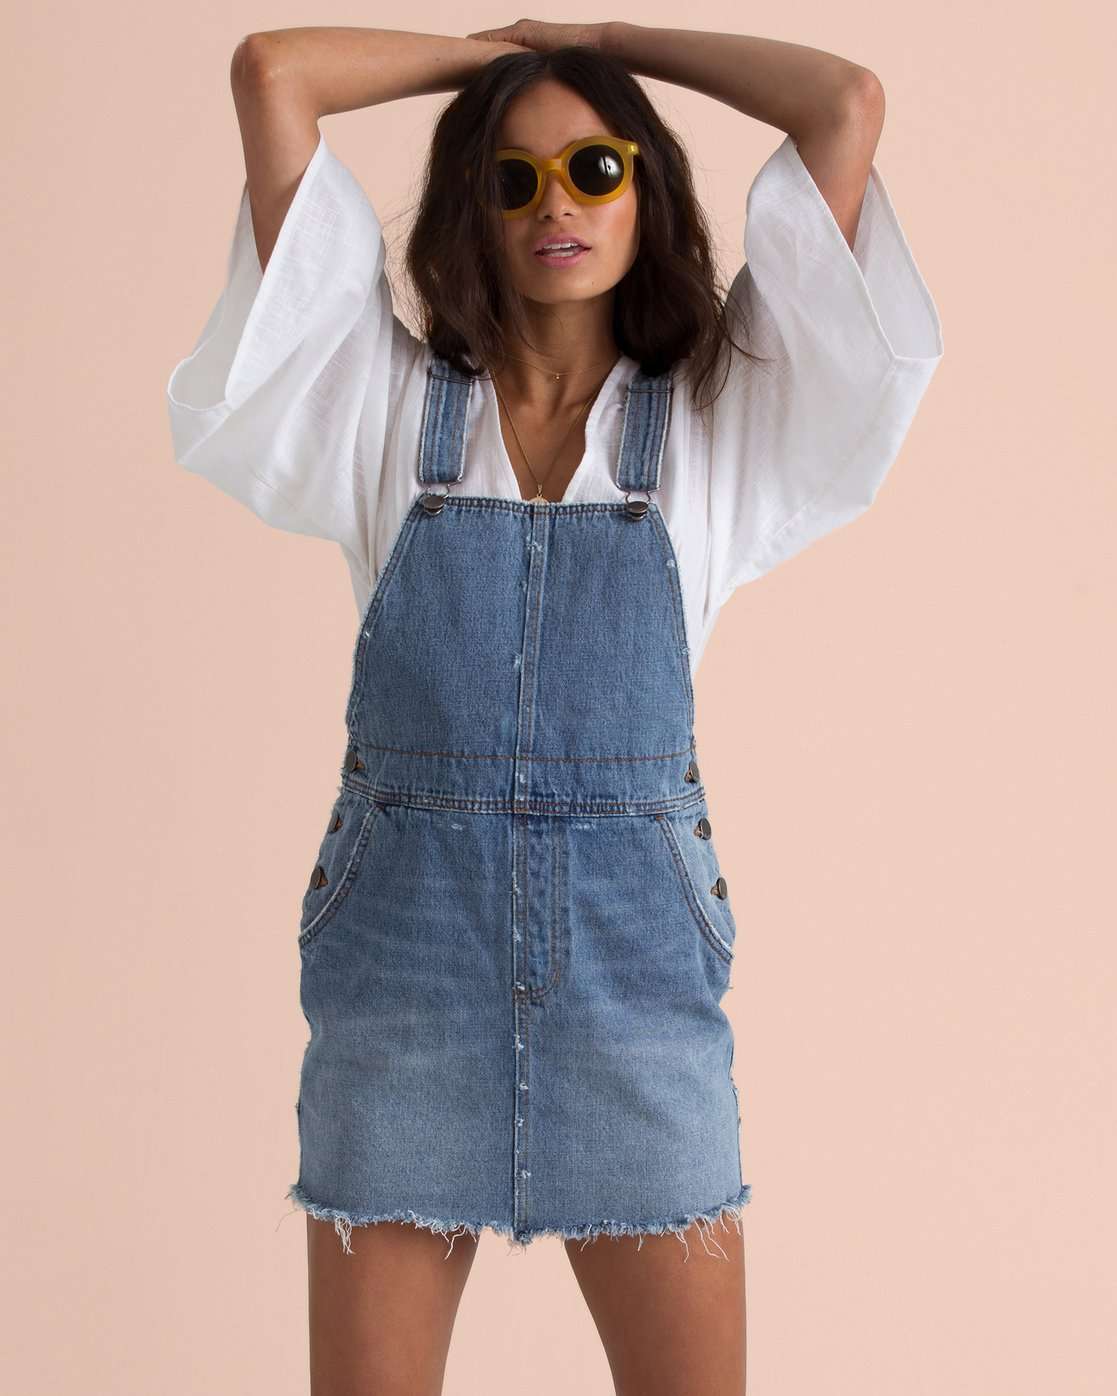 BILLABONG W'S DRESSES BEF XS BILLABONG X SINCERELY JULES FADE AWAY DENIM SKIRT OVERALLS